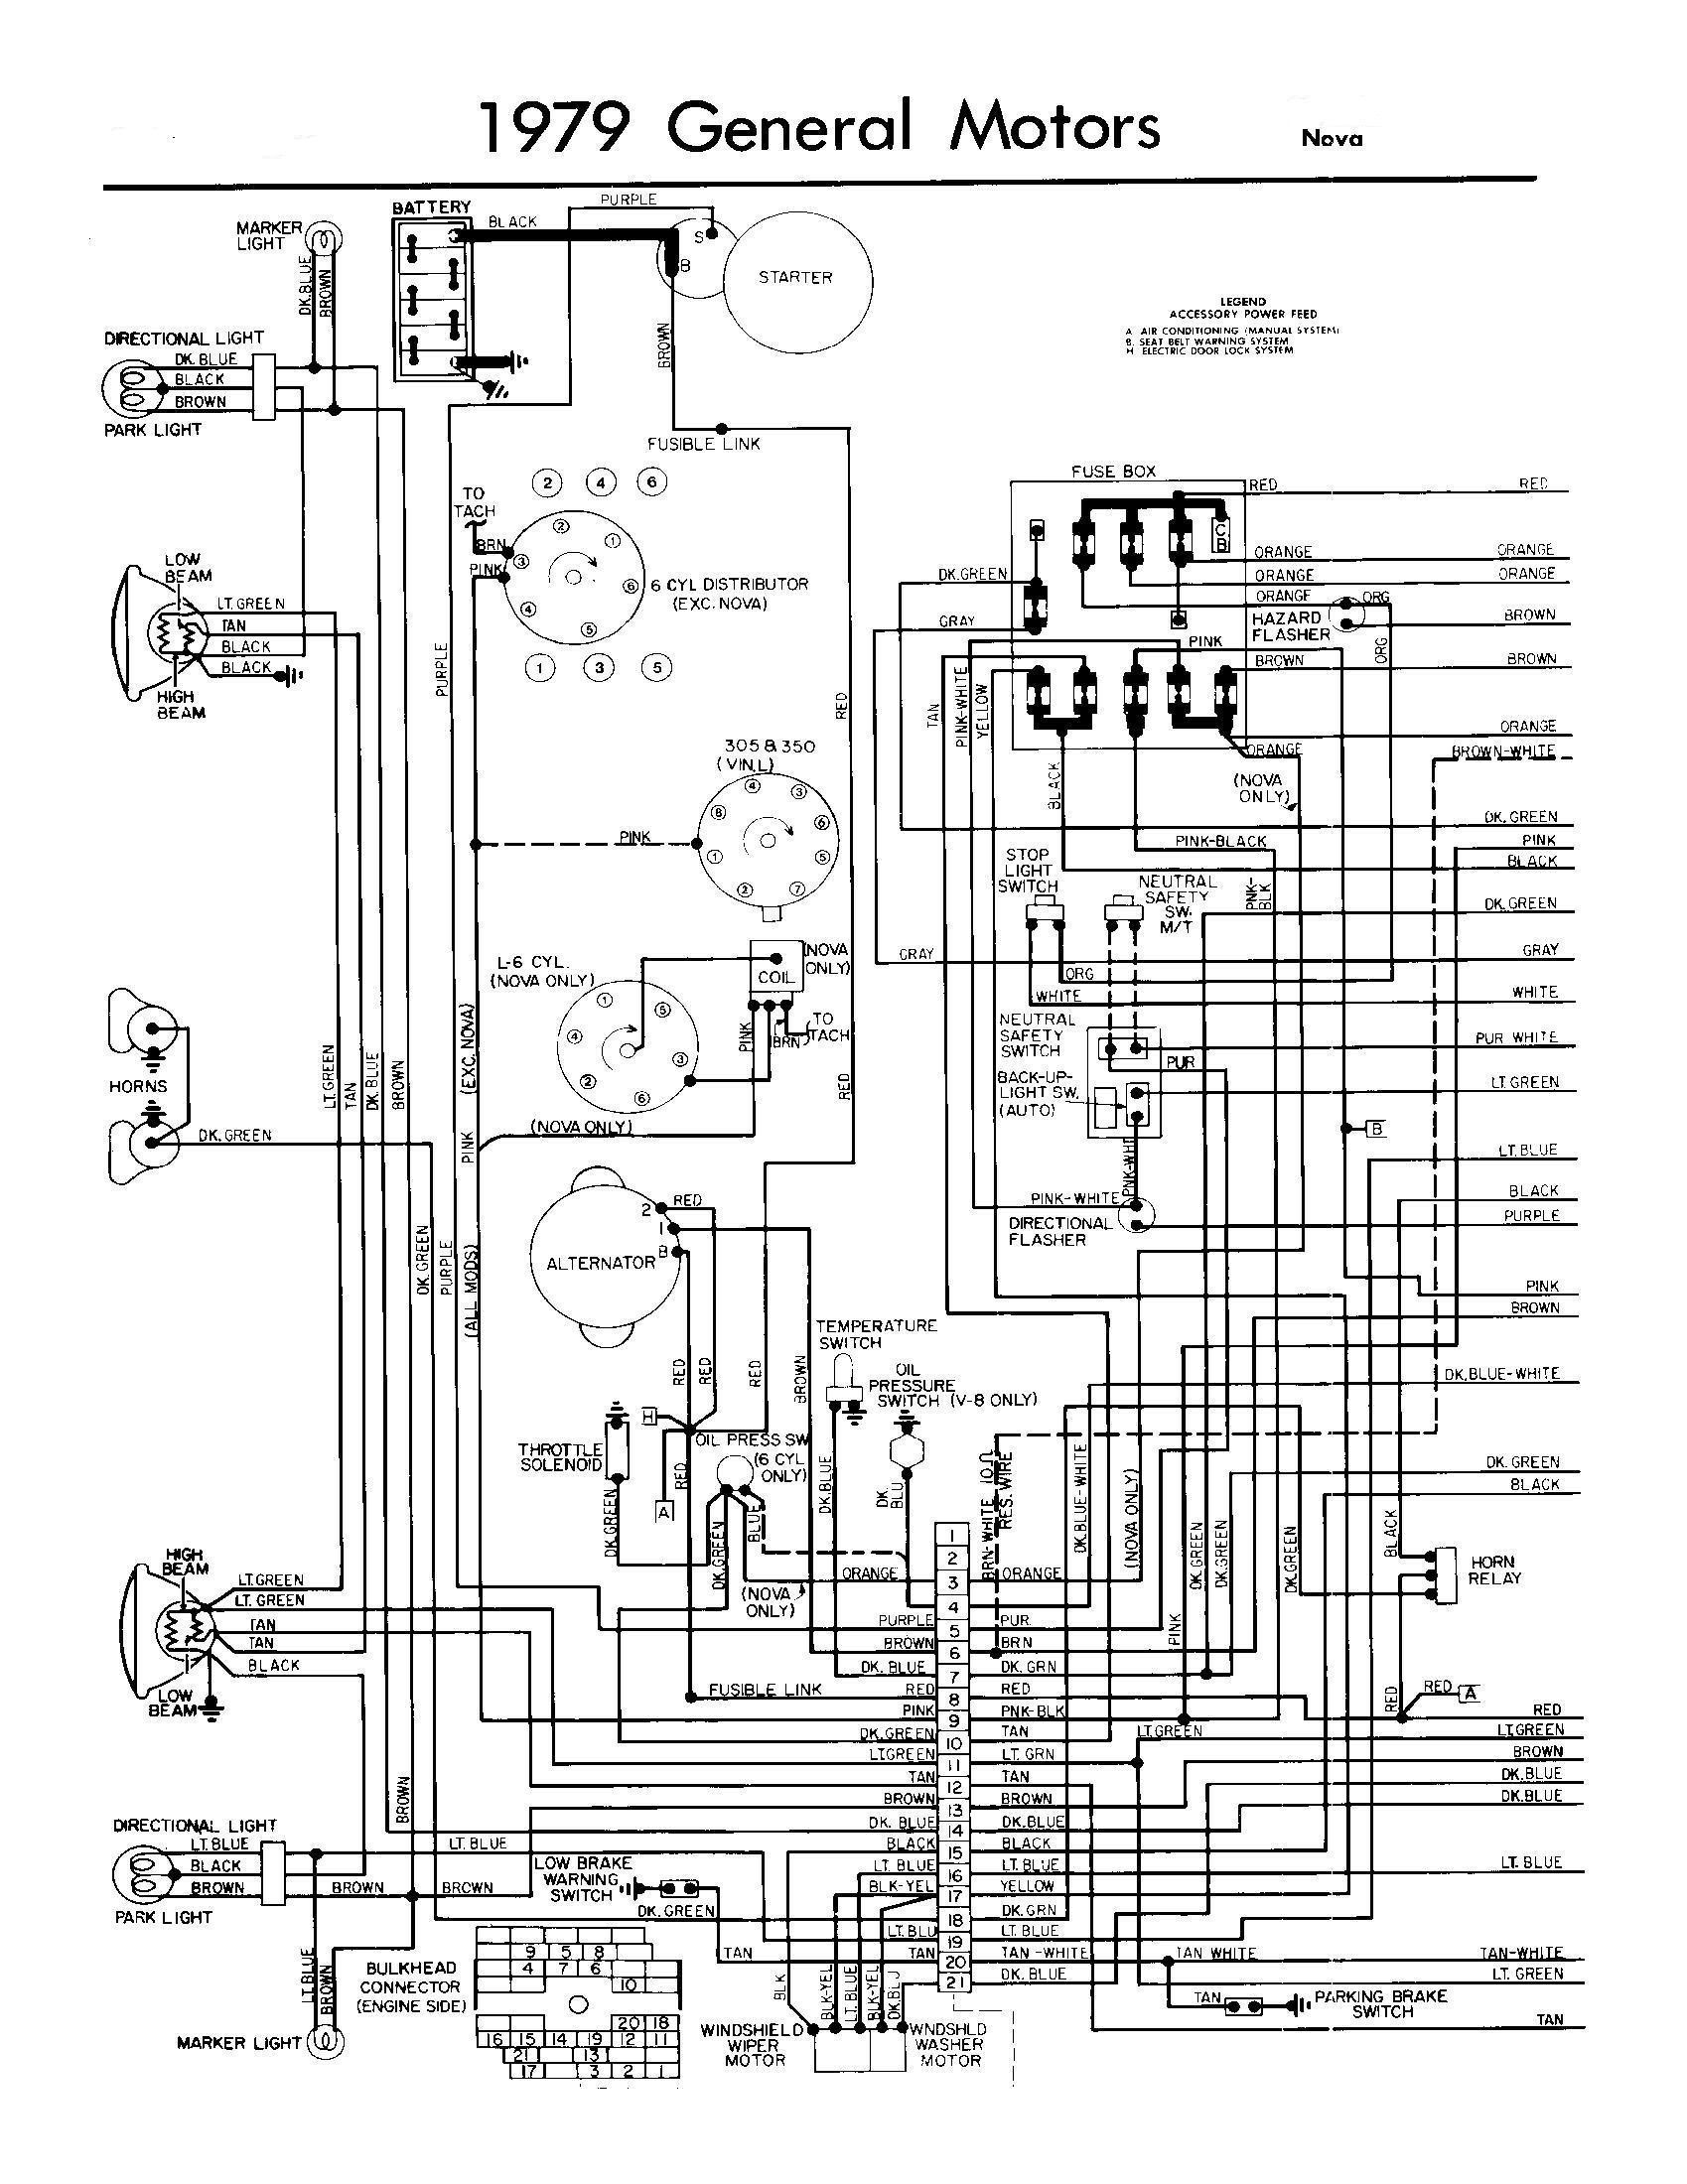 wiring an schematic from another schematic wiring diagram source Chrysler Dodge Wiring Diagram